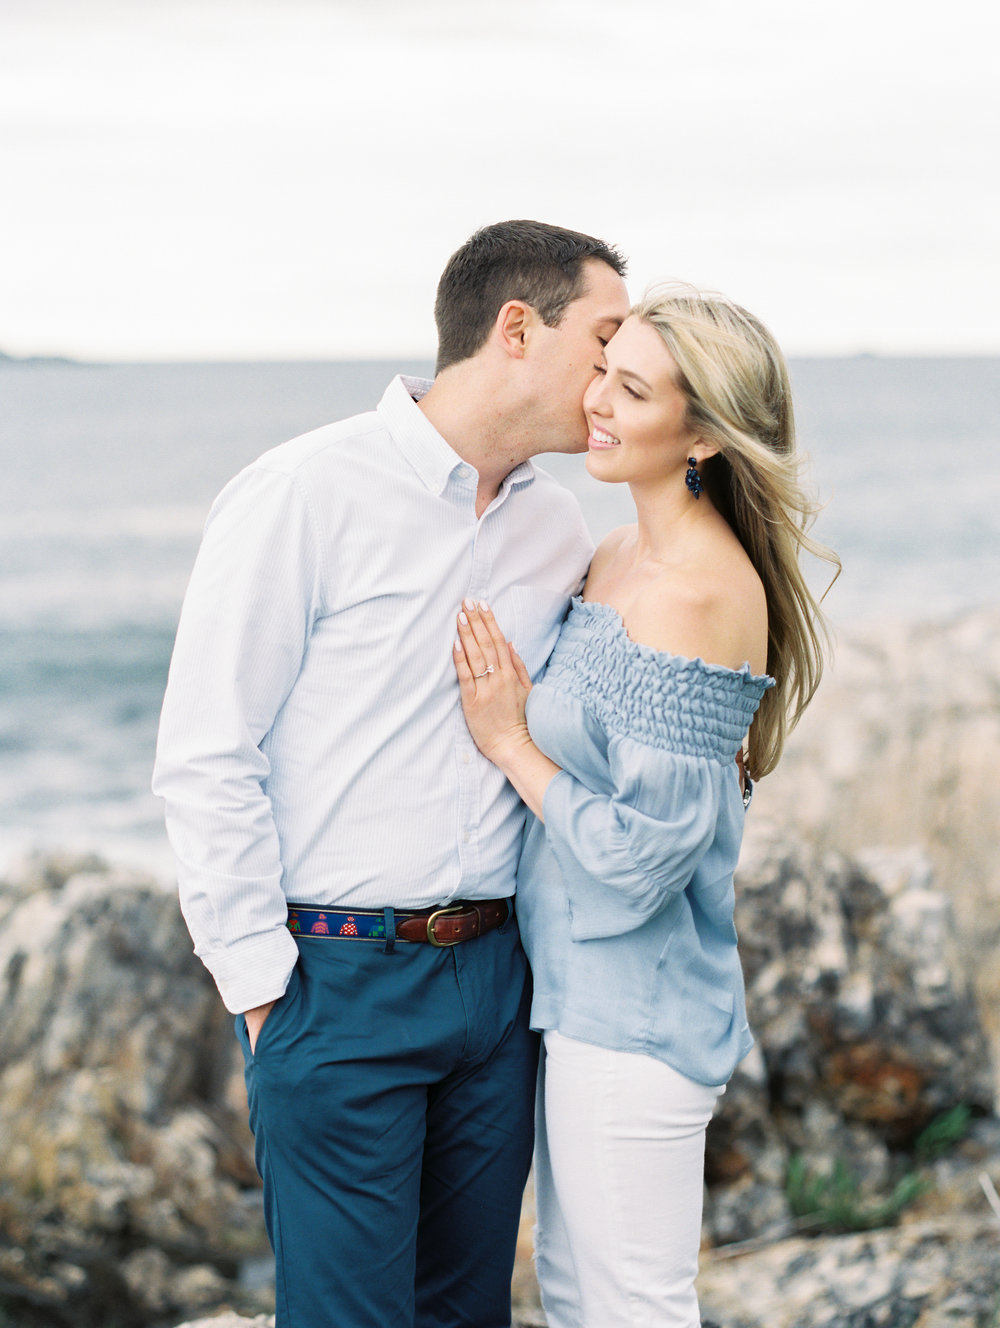 Weekday Engagement Collection | $950  -  Up to 1 hour and 30 minutes of photography Online gallery with download of imagesComplimentary travel within Manhattan. A quote can be provided for other locations.